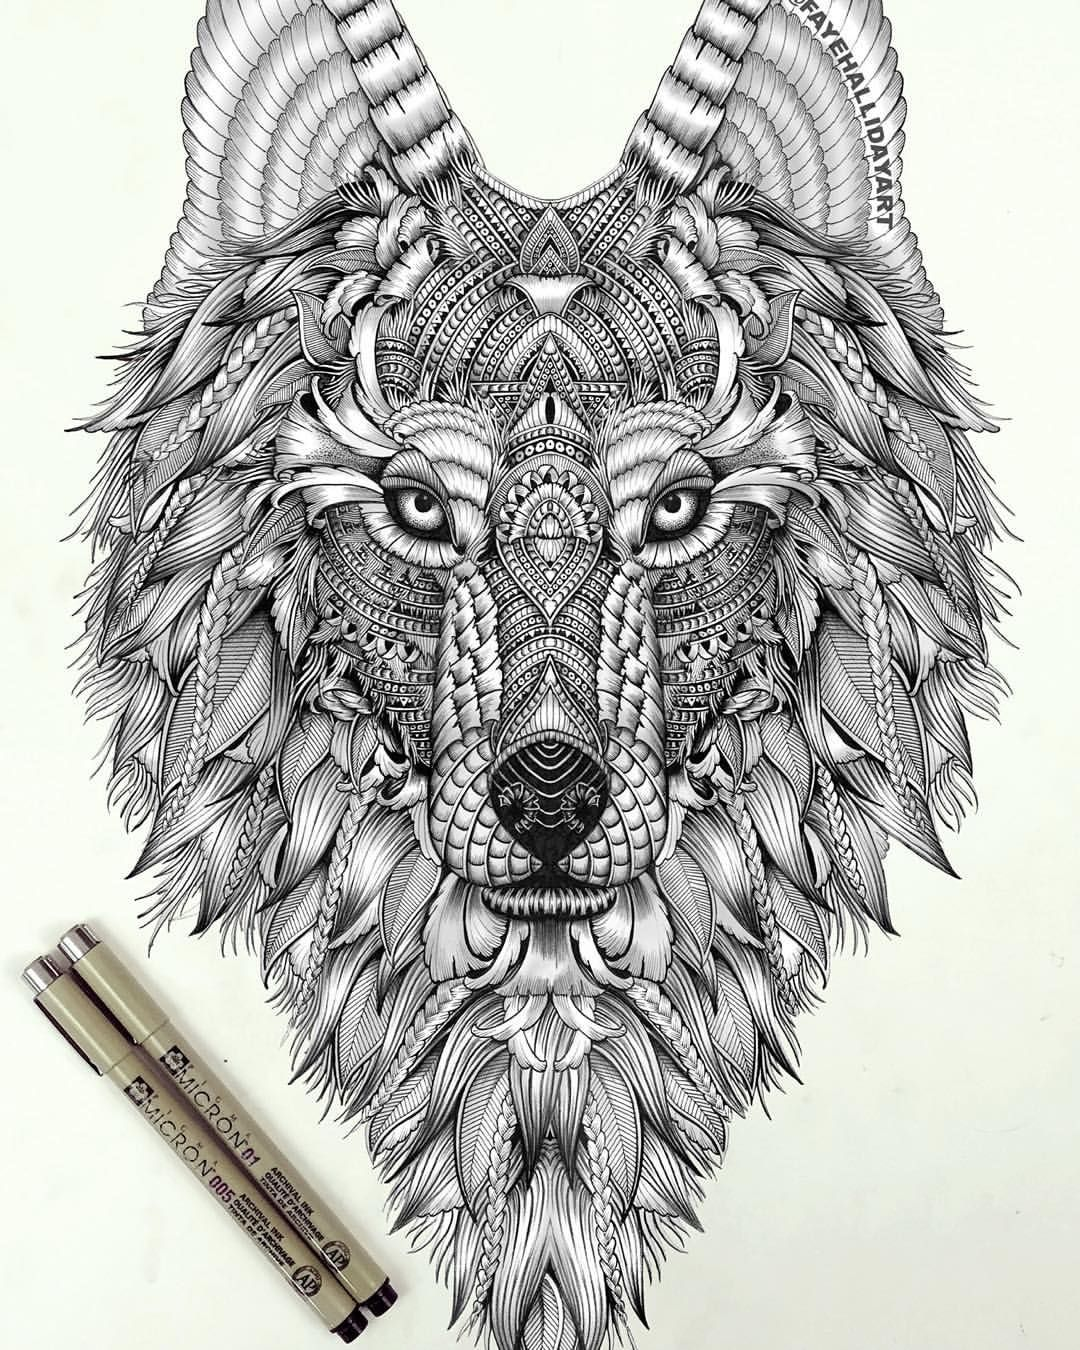 Coloring pages for adults wolf - Printable Wolf Coloring Pages For Adults See More Aurora Revisited By Faye Halliday Aurora Holds An Appetite For Freedom And The Overwhelming Need